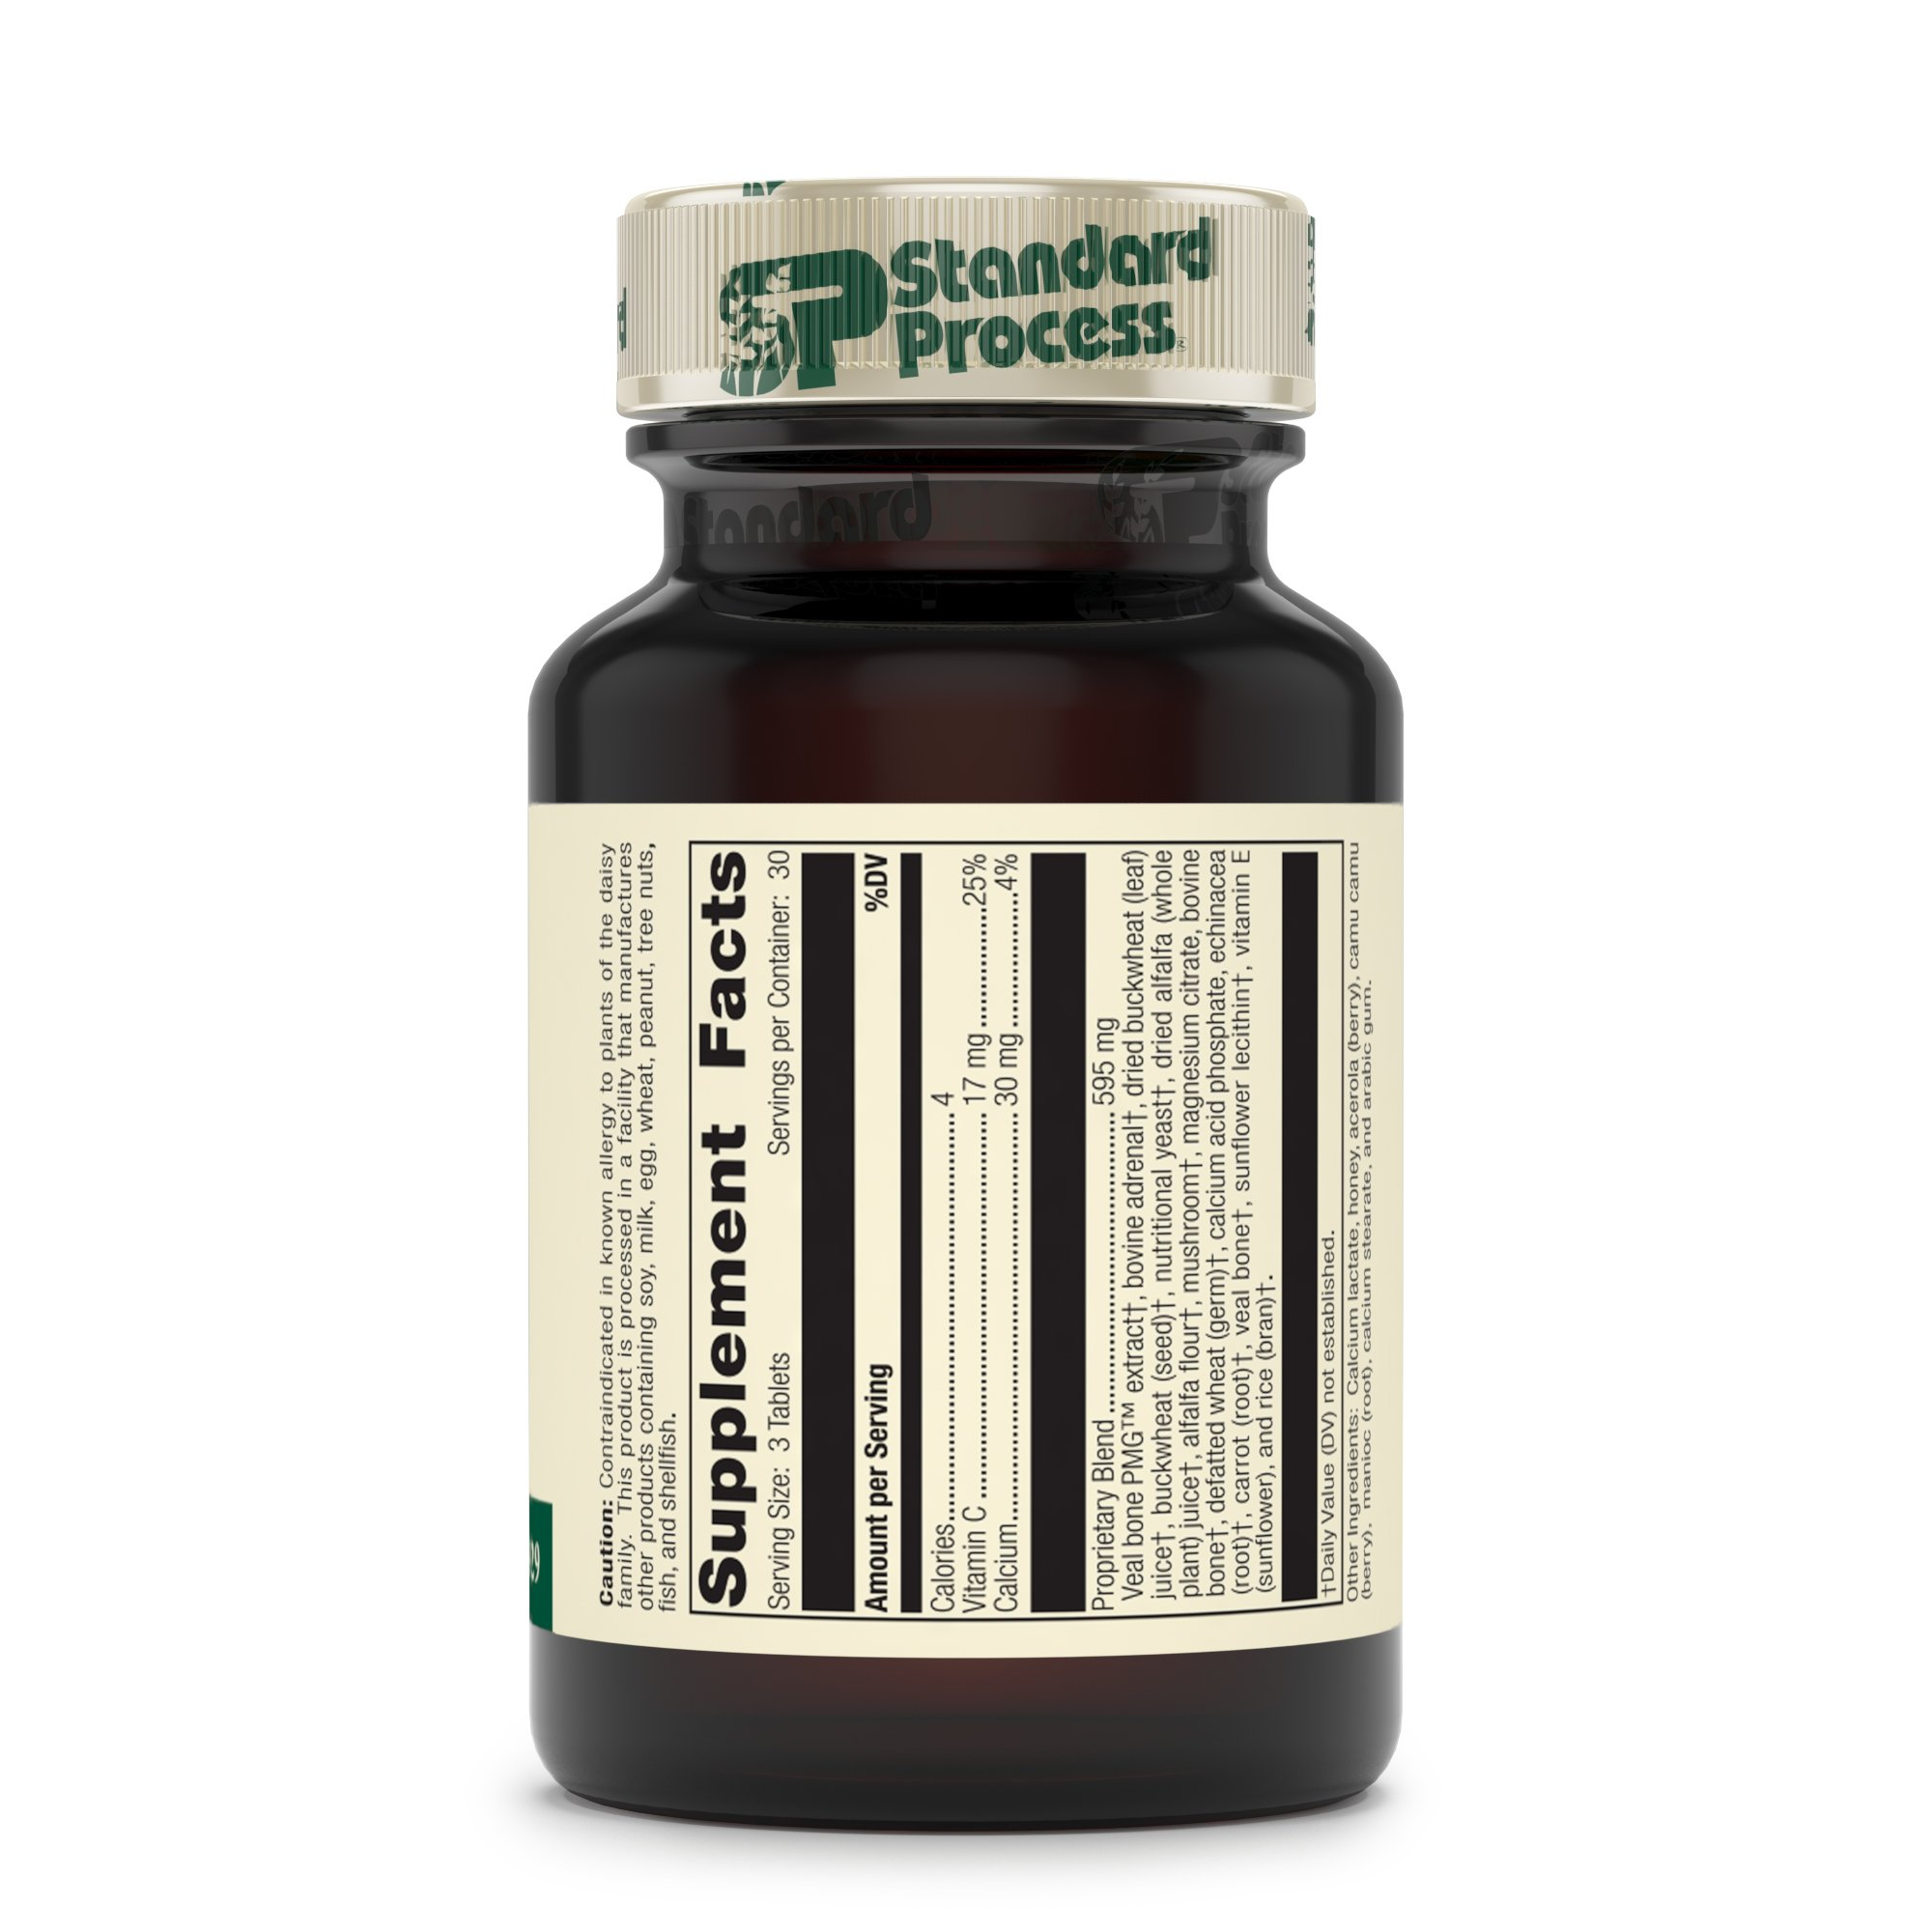 Standard Process - Cataplex C - Immune System Response Supplement, 17 mg Vitamin C, 30 mg Calcium, Supports Bone Health, Antioxidant Activity, Natural Collagen-Synthesis - 90 Tablets by Standard Process (Image #3)